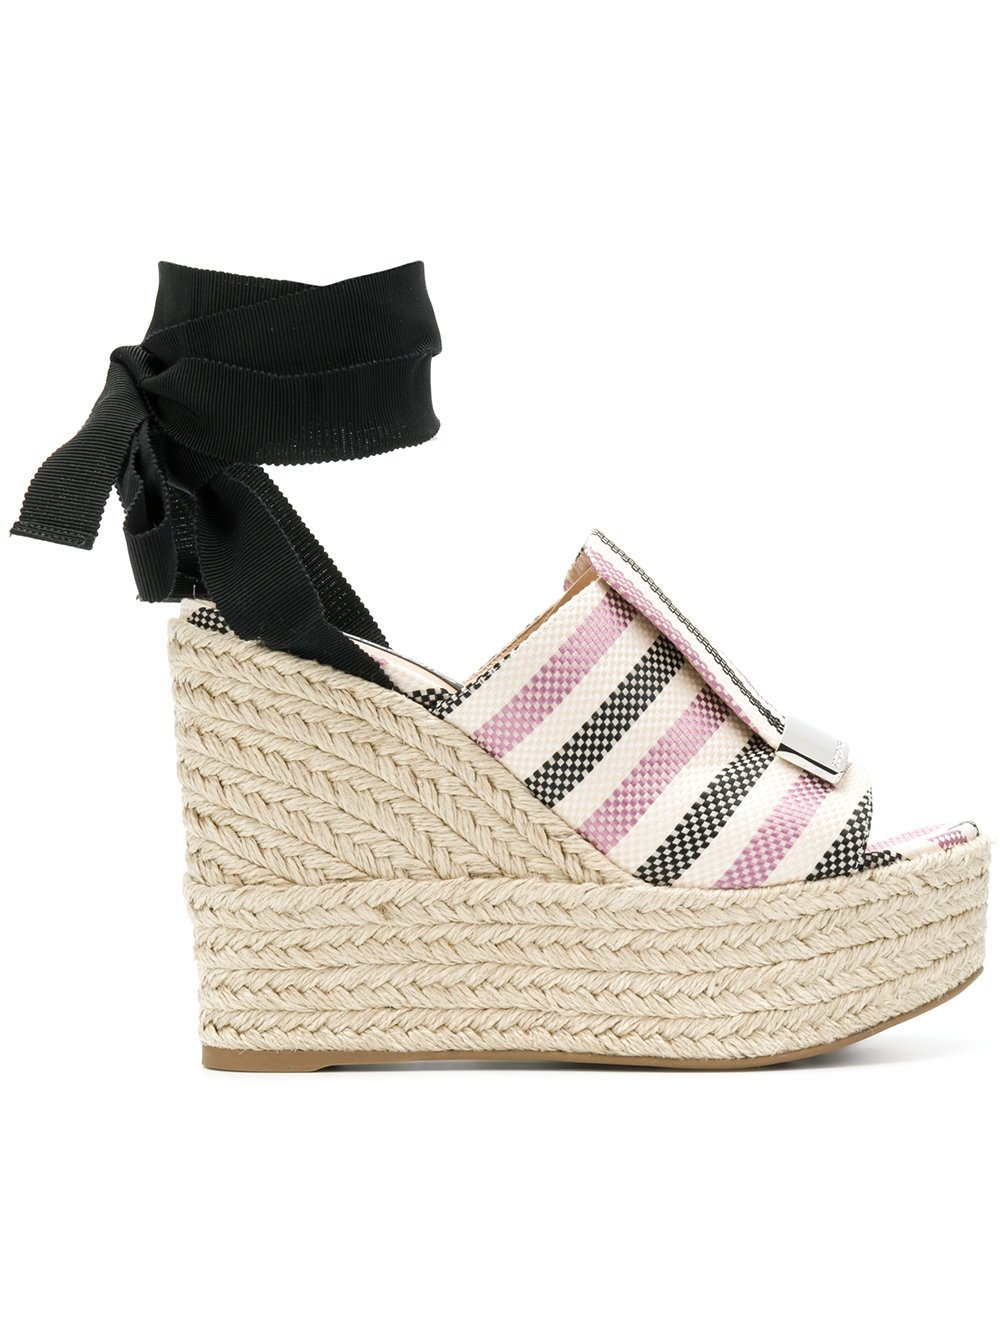 Sergio Rossi Women's A80210mfn2725058 Black/Pink Cotton Wedges